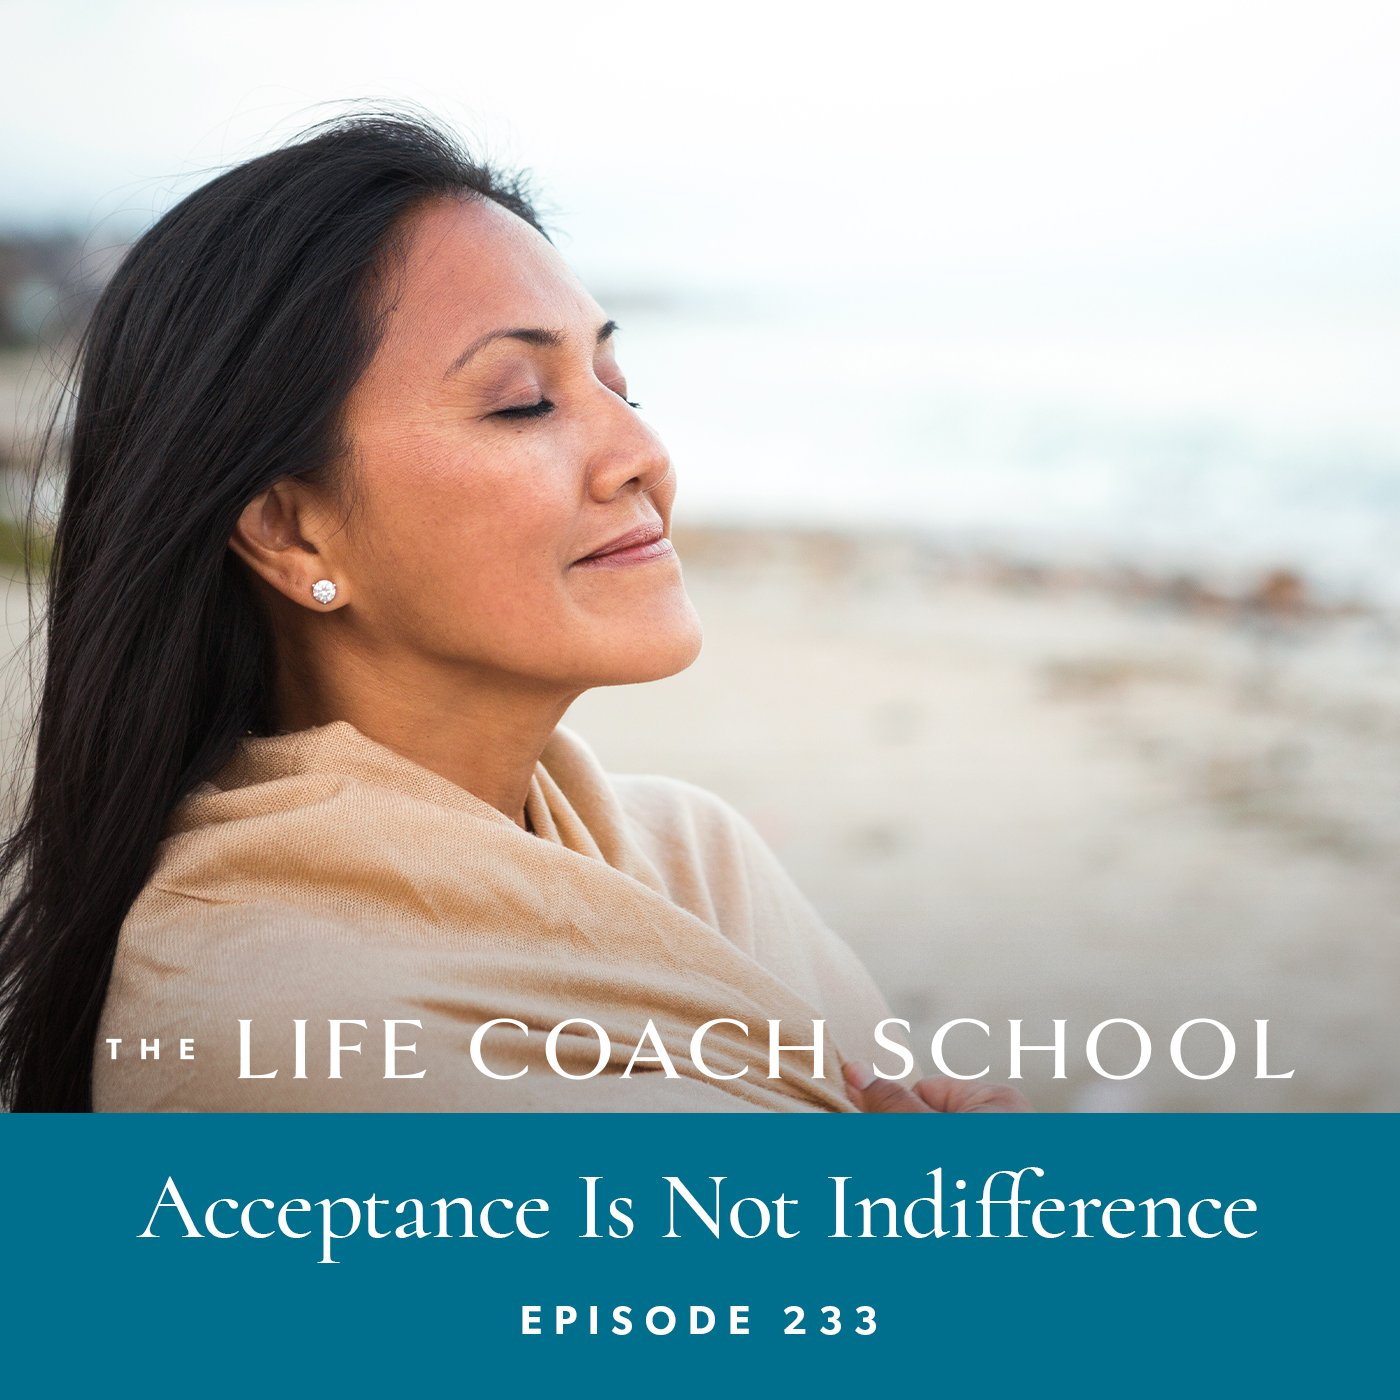 The Life Coach School Podcast with Brooke Castillo | Episode 233 | Acceptance Is Not Indifference